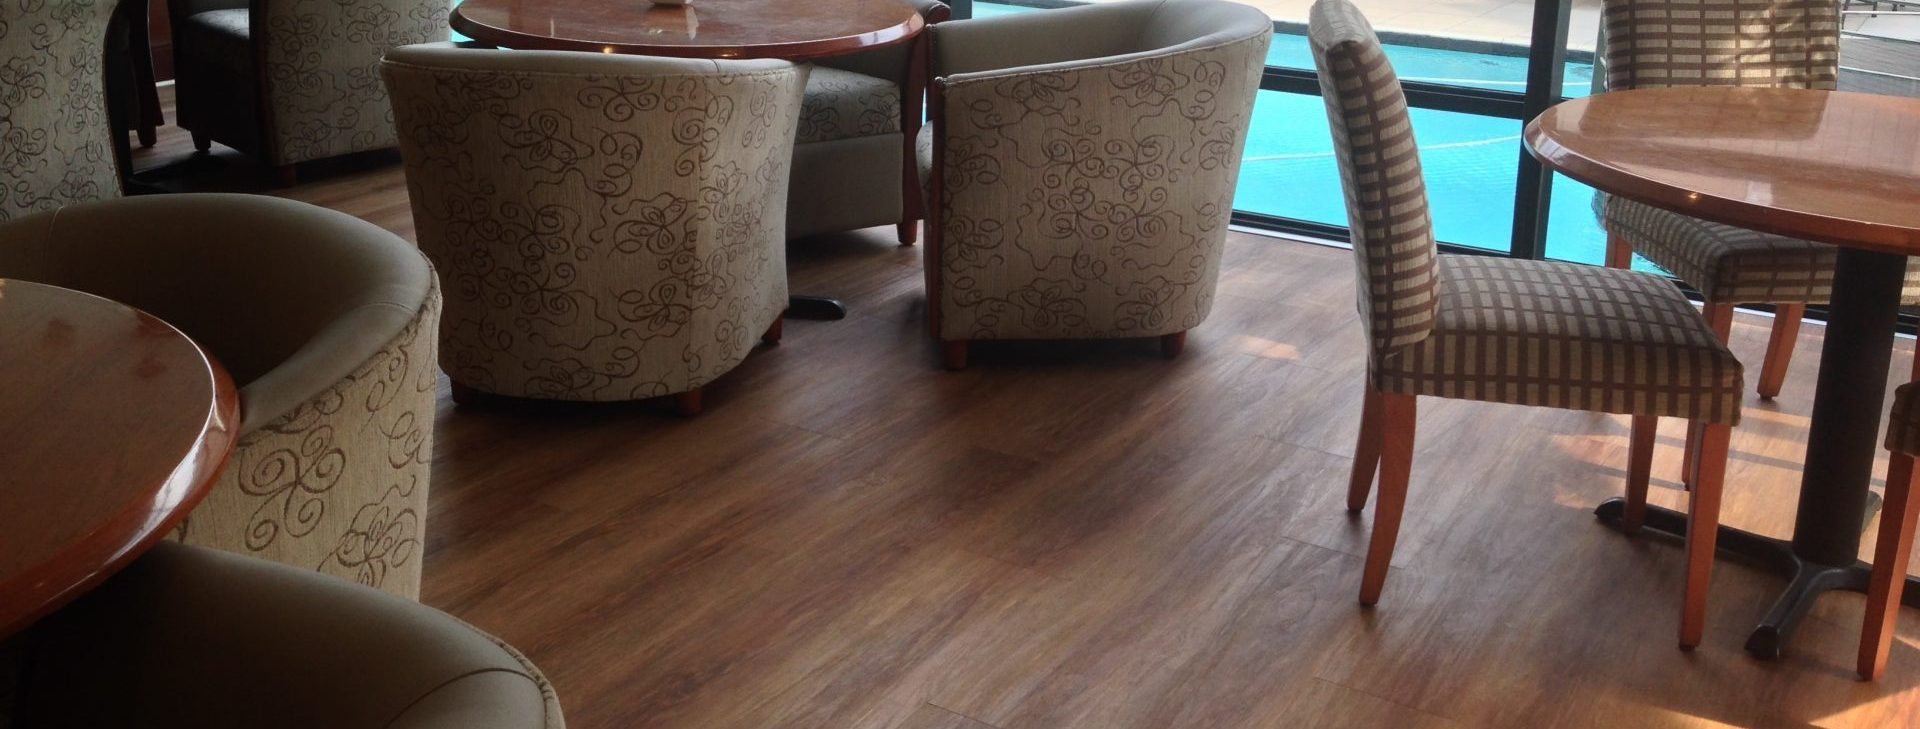 Traviata Introduces Firm Fit Residential Vinyl Flooring